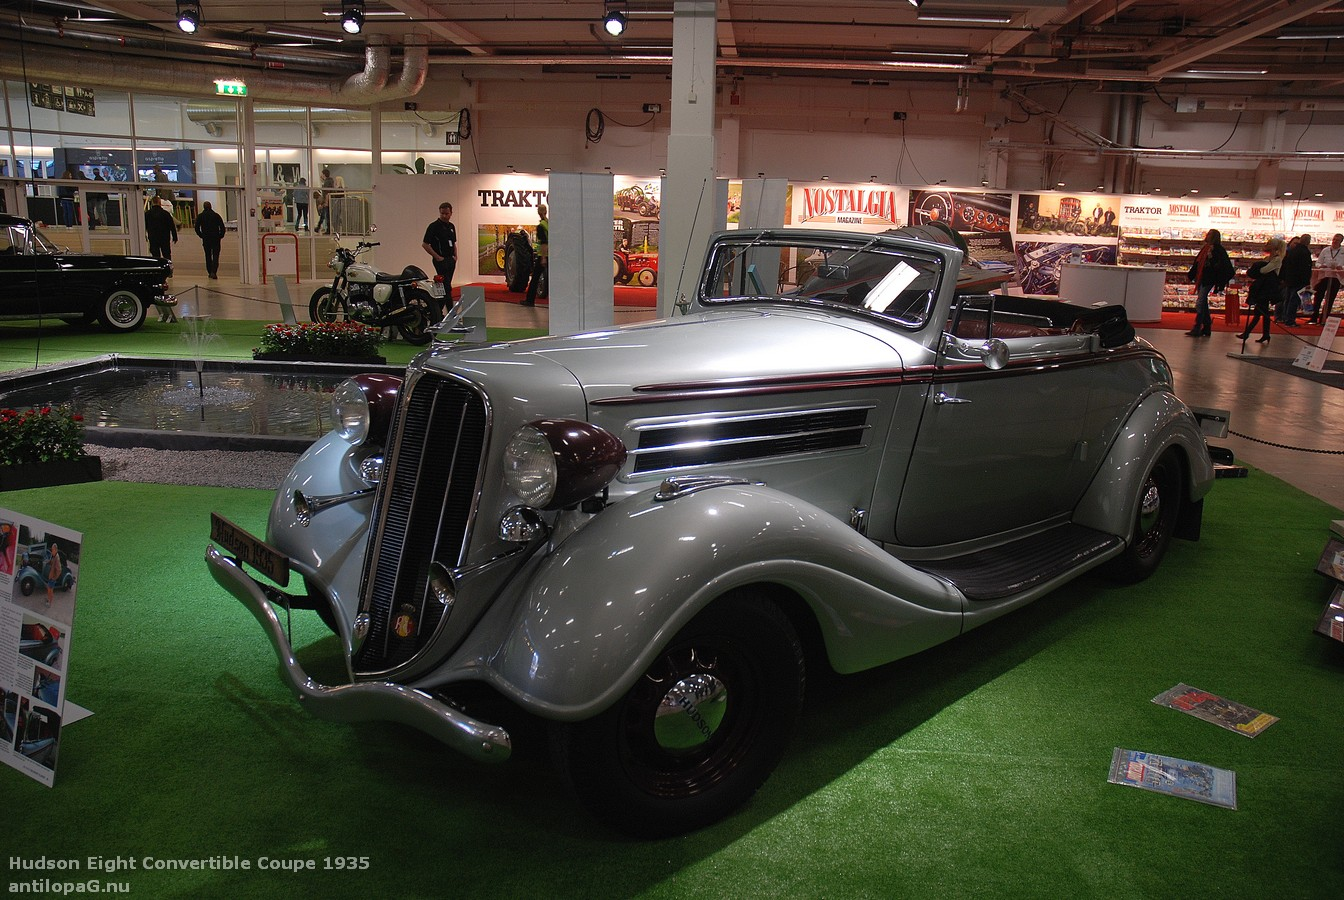 Hudson Eight Convertible Coupé 1935